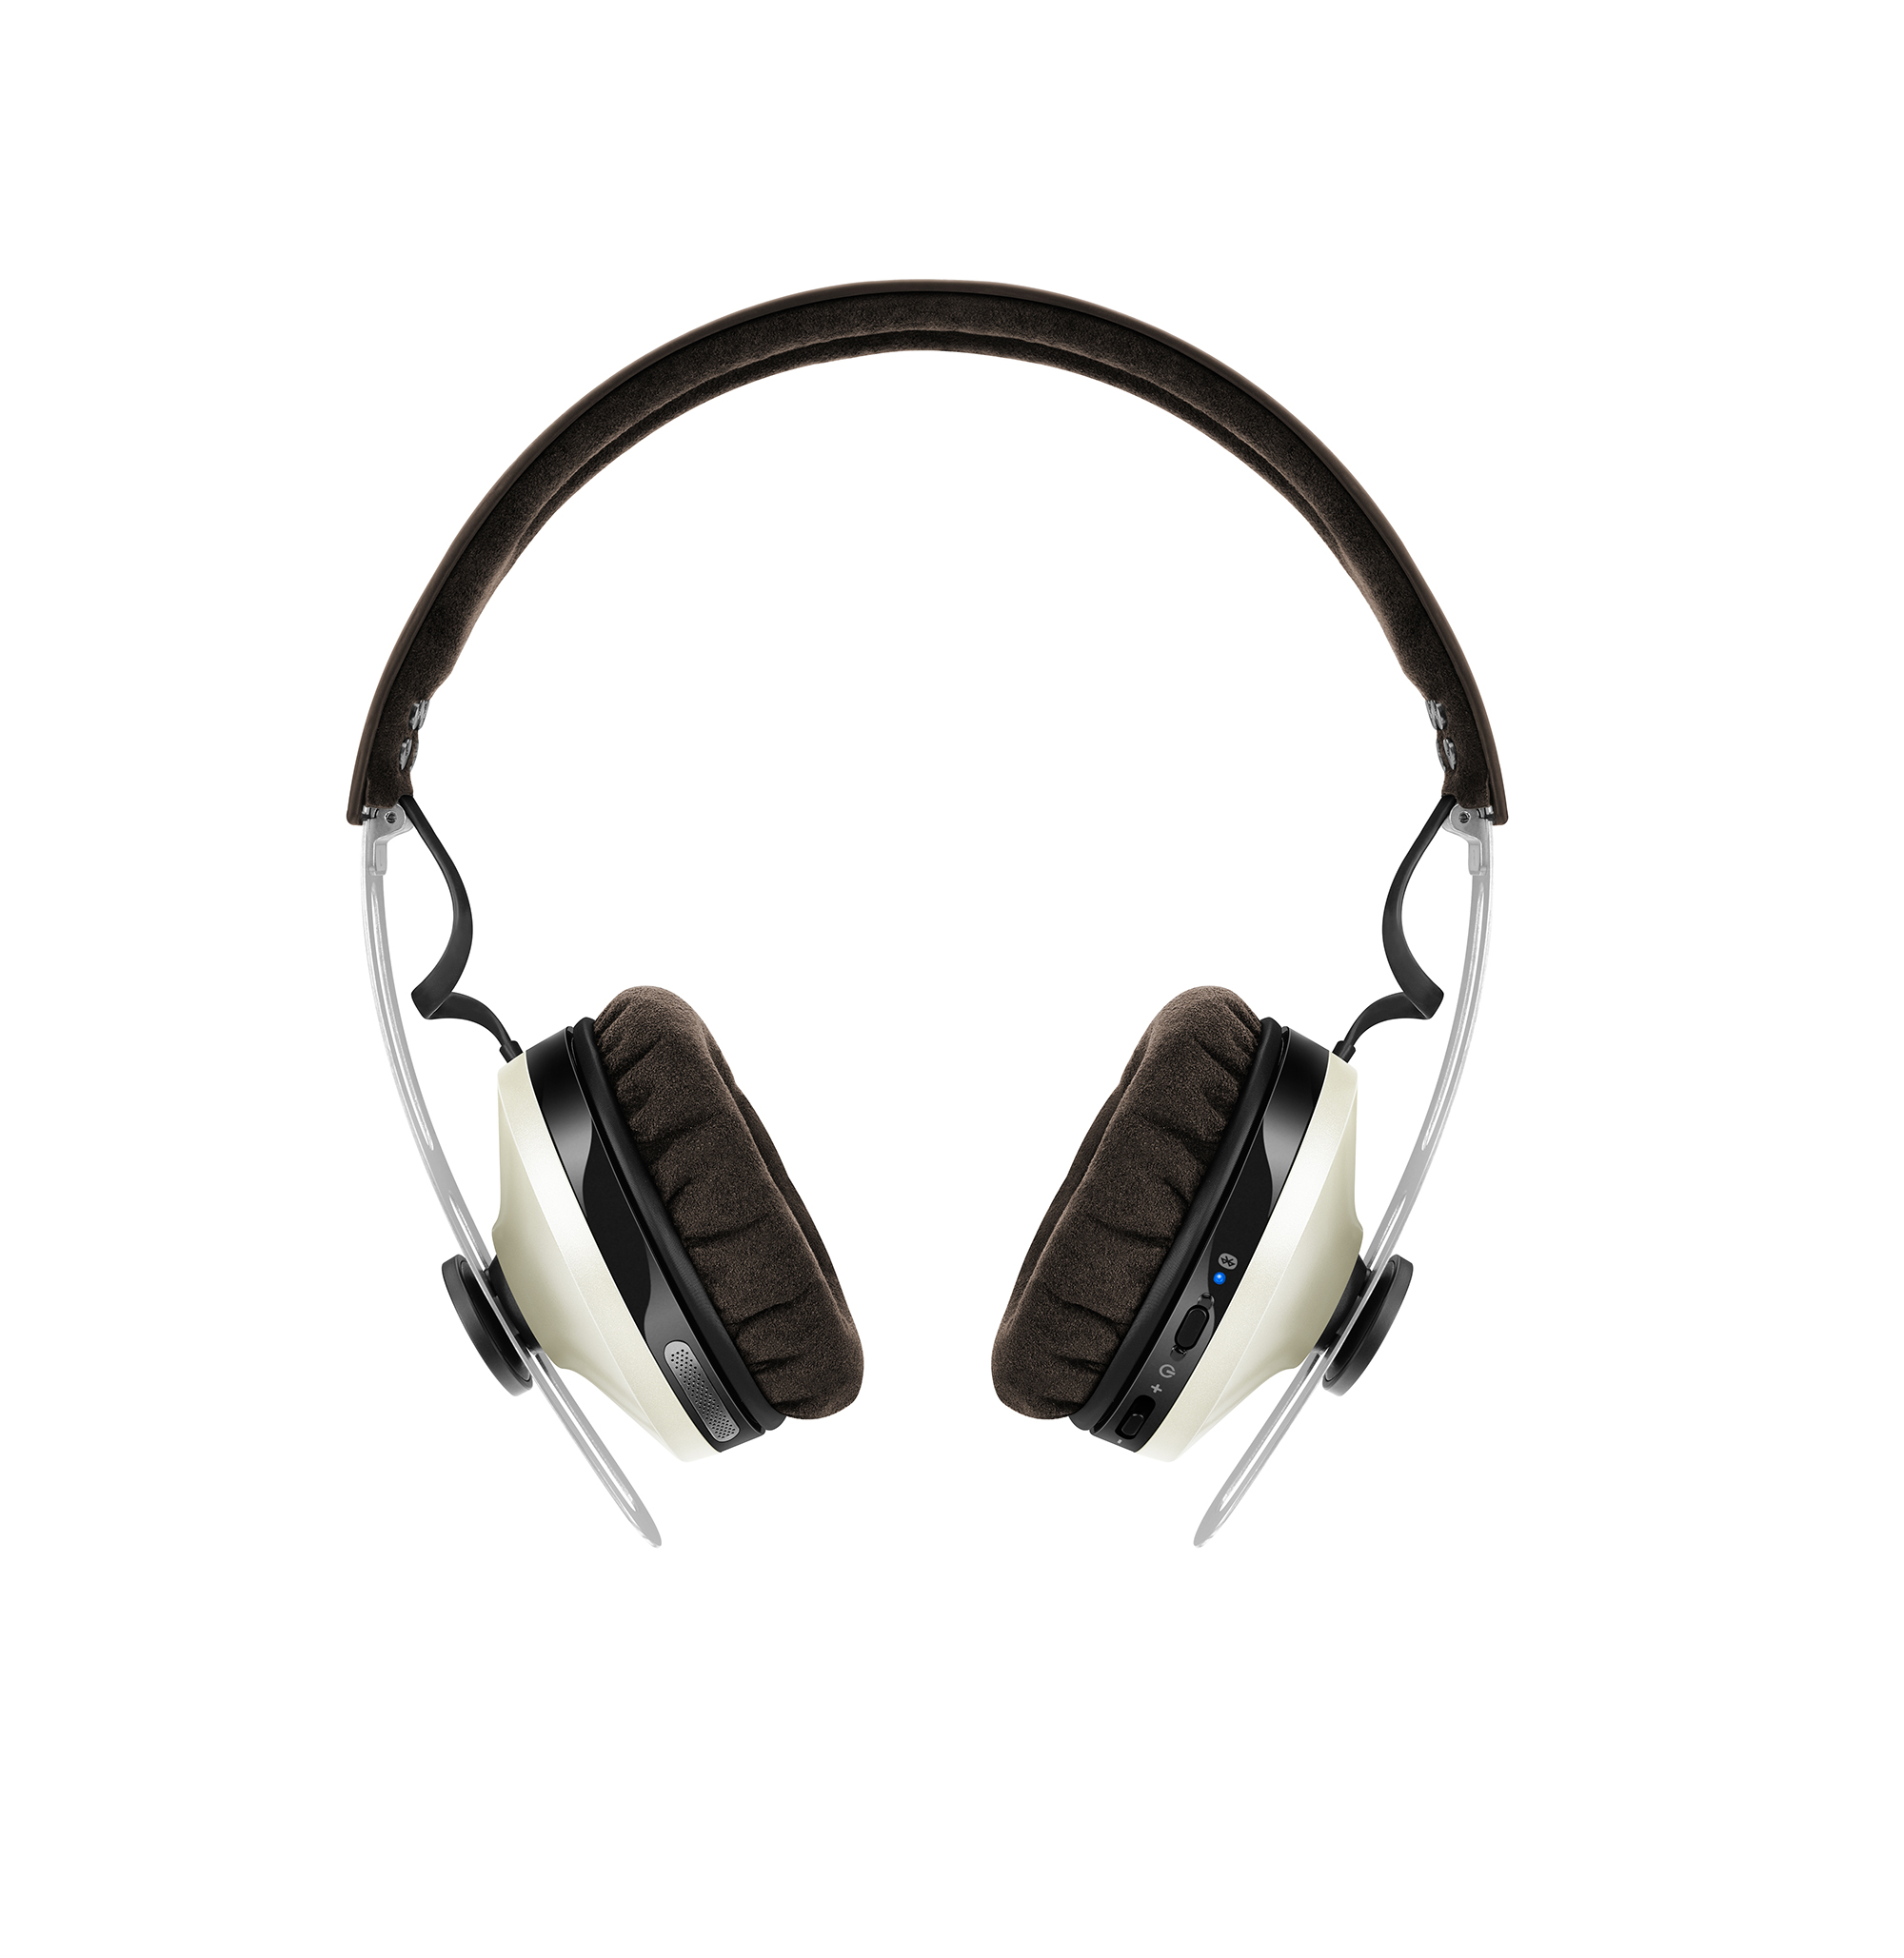 Sennheiser Momentum On-Ear Wireless